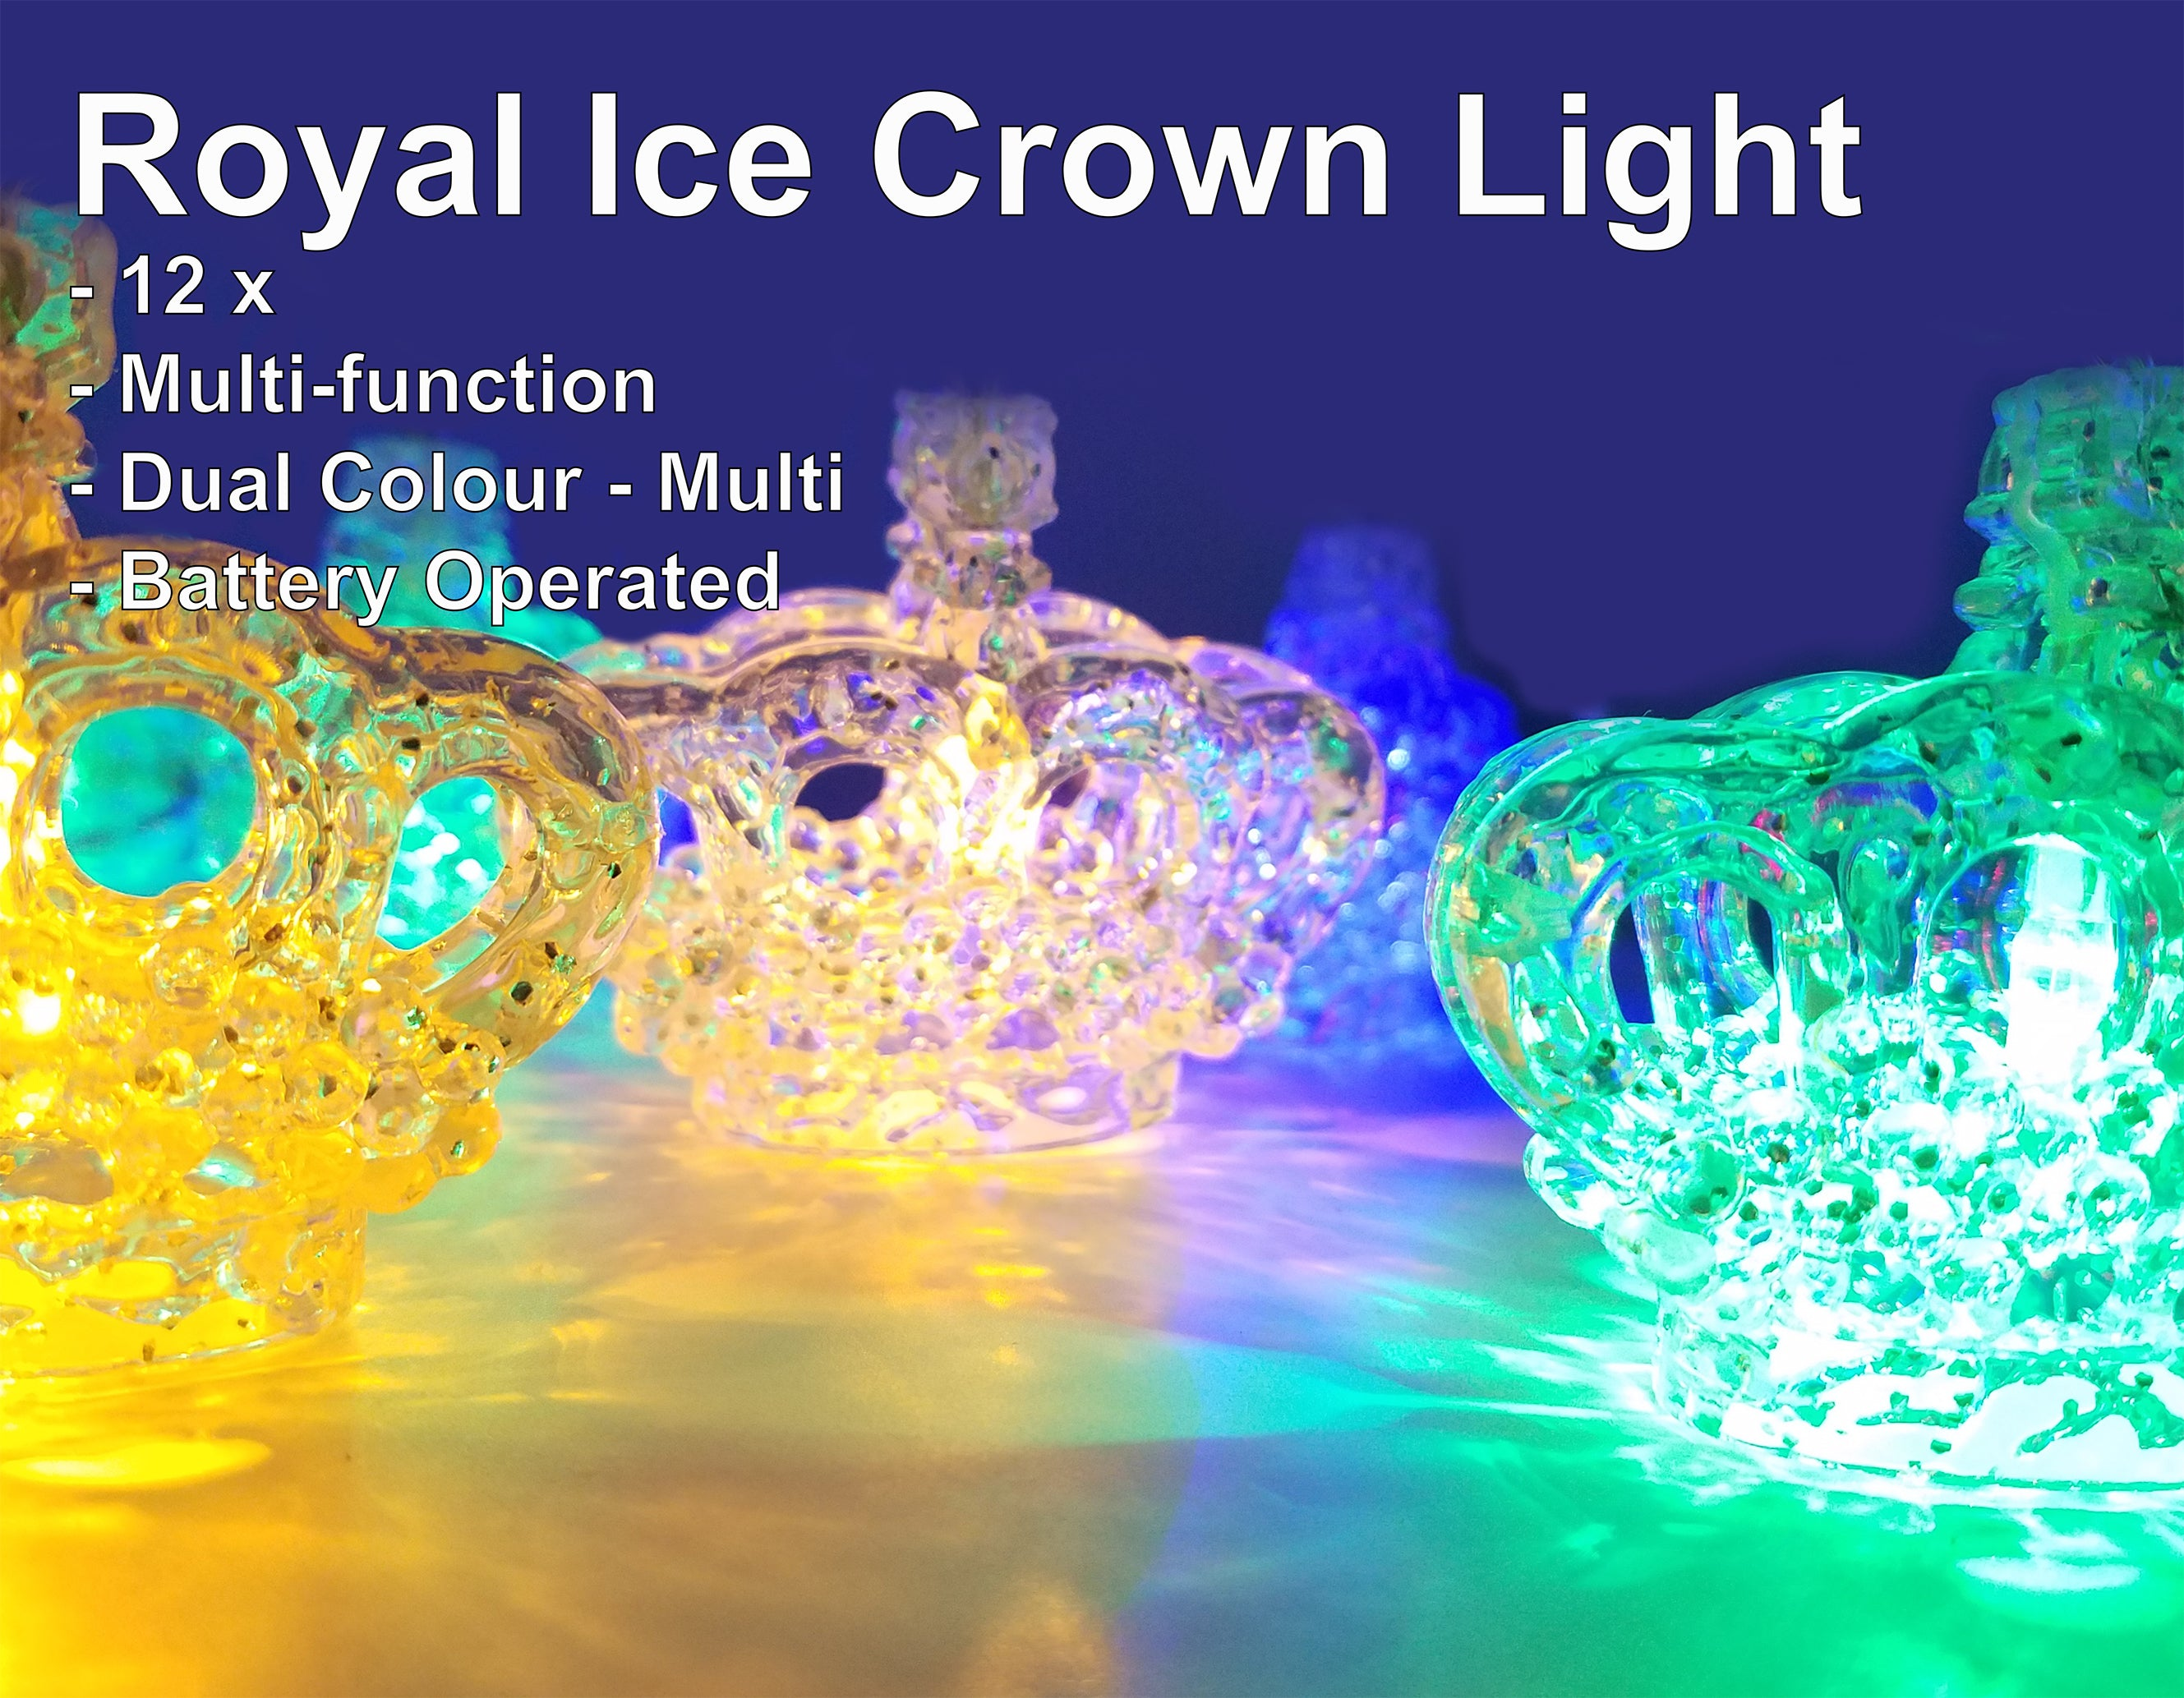 FluxTech - 3D Royal Ice Crystal Crown 12 x Dual Colour LED String Lights by JustLED – Multi-function Effect – Timer function - Battery Operated